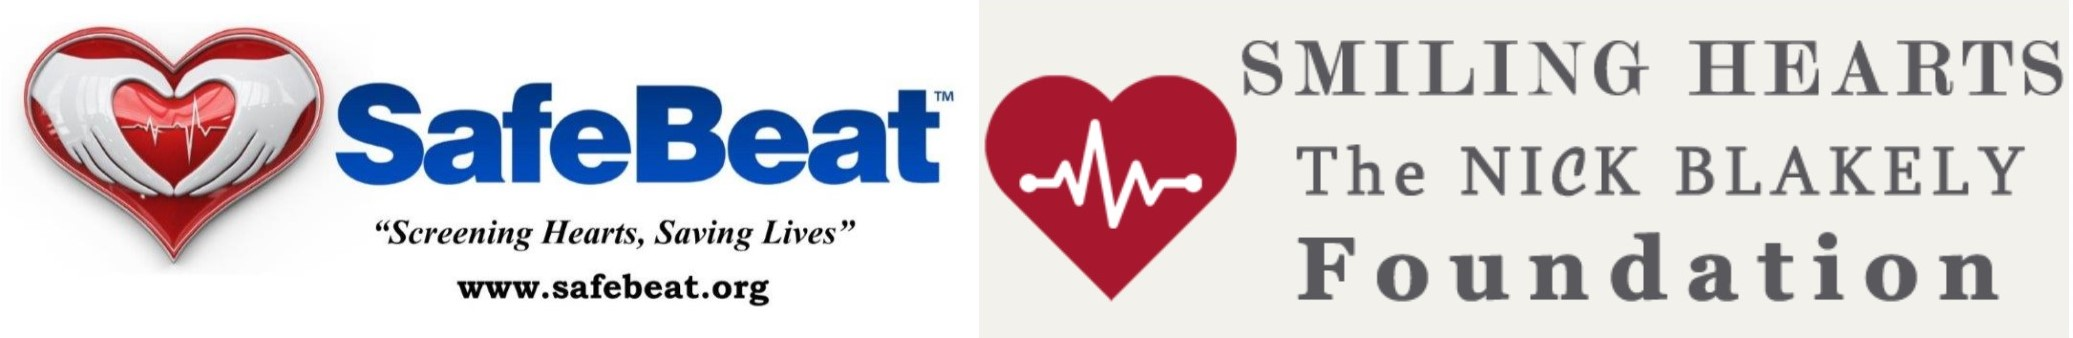 SafeBeat Collaborates with Smiling Hearts: Nick Blakely Foundation to Provide Sudden Cardiac Awareness, Preventative Heart Screening, and CPR/AED Education